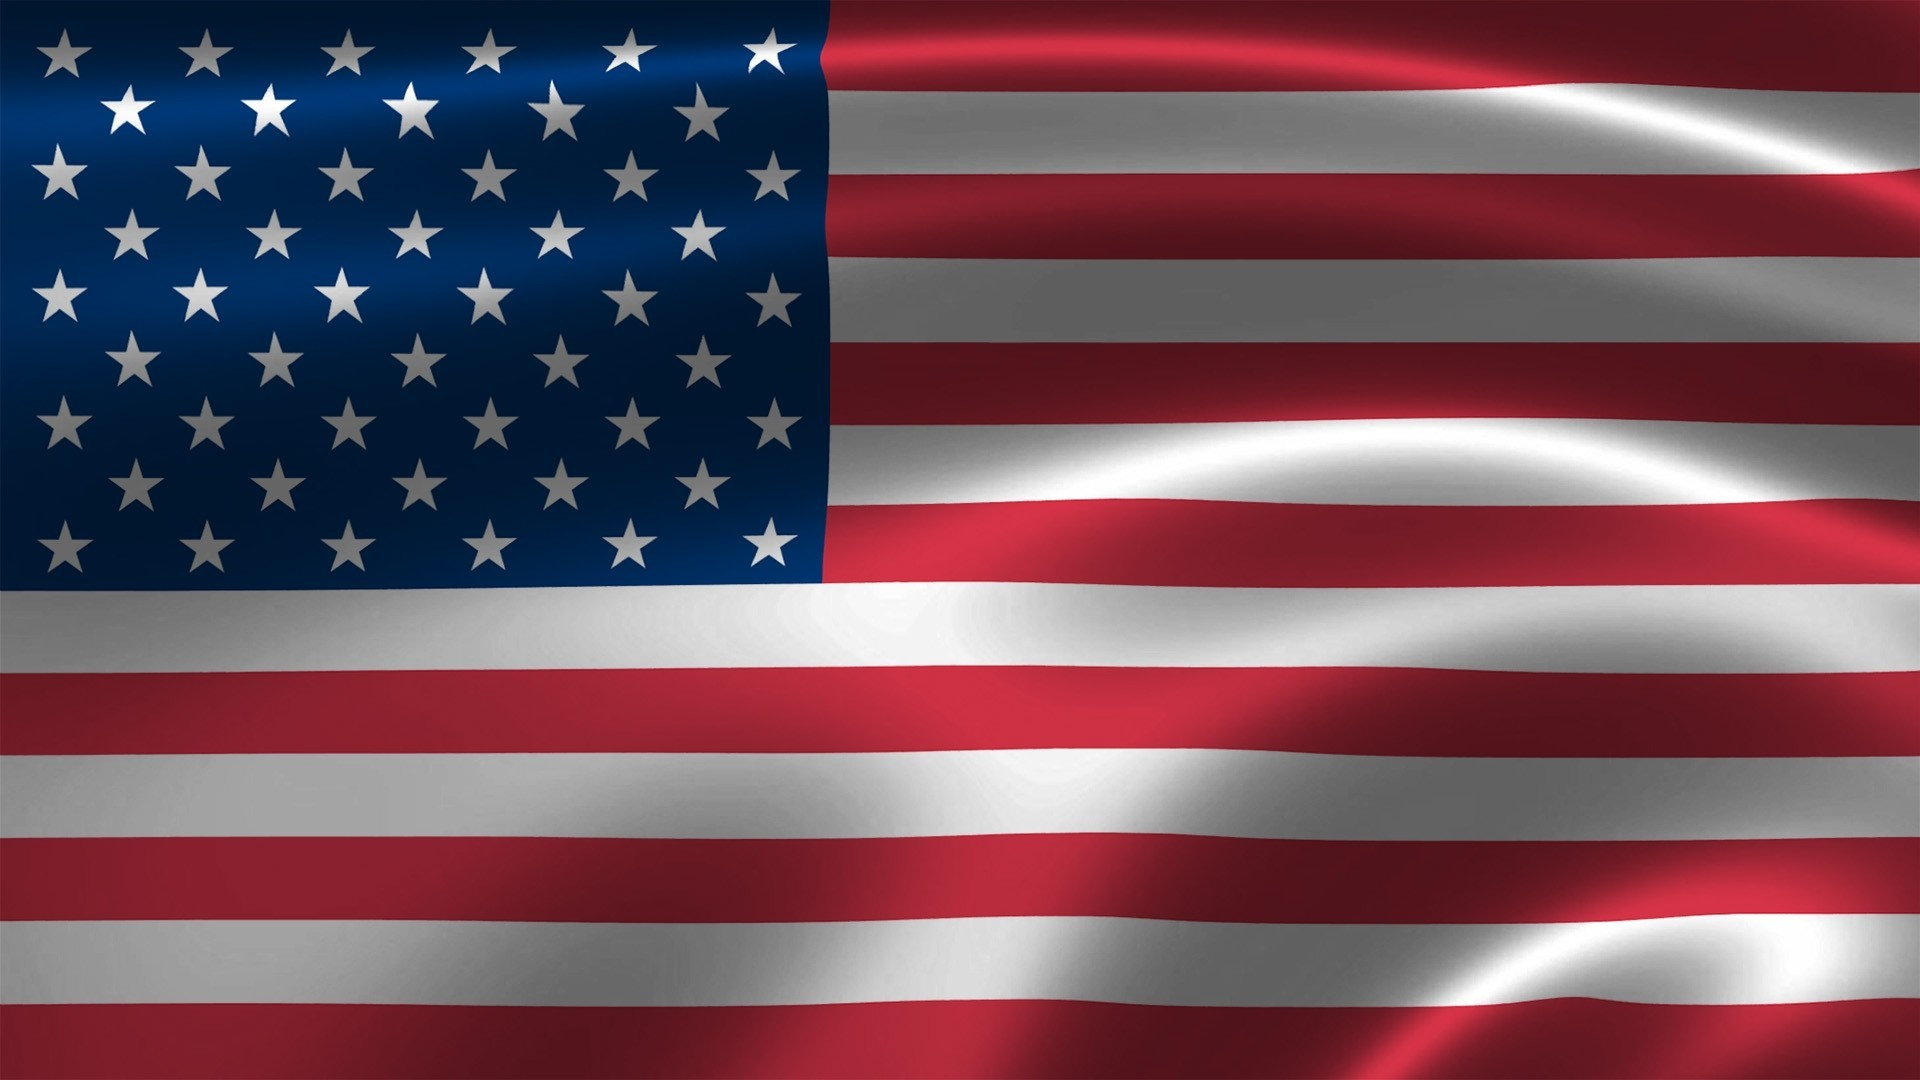 American Flag Desktop Wallpaper 63 Pictures